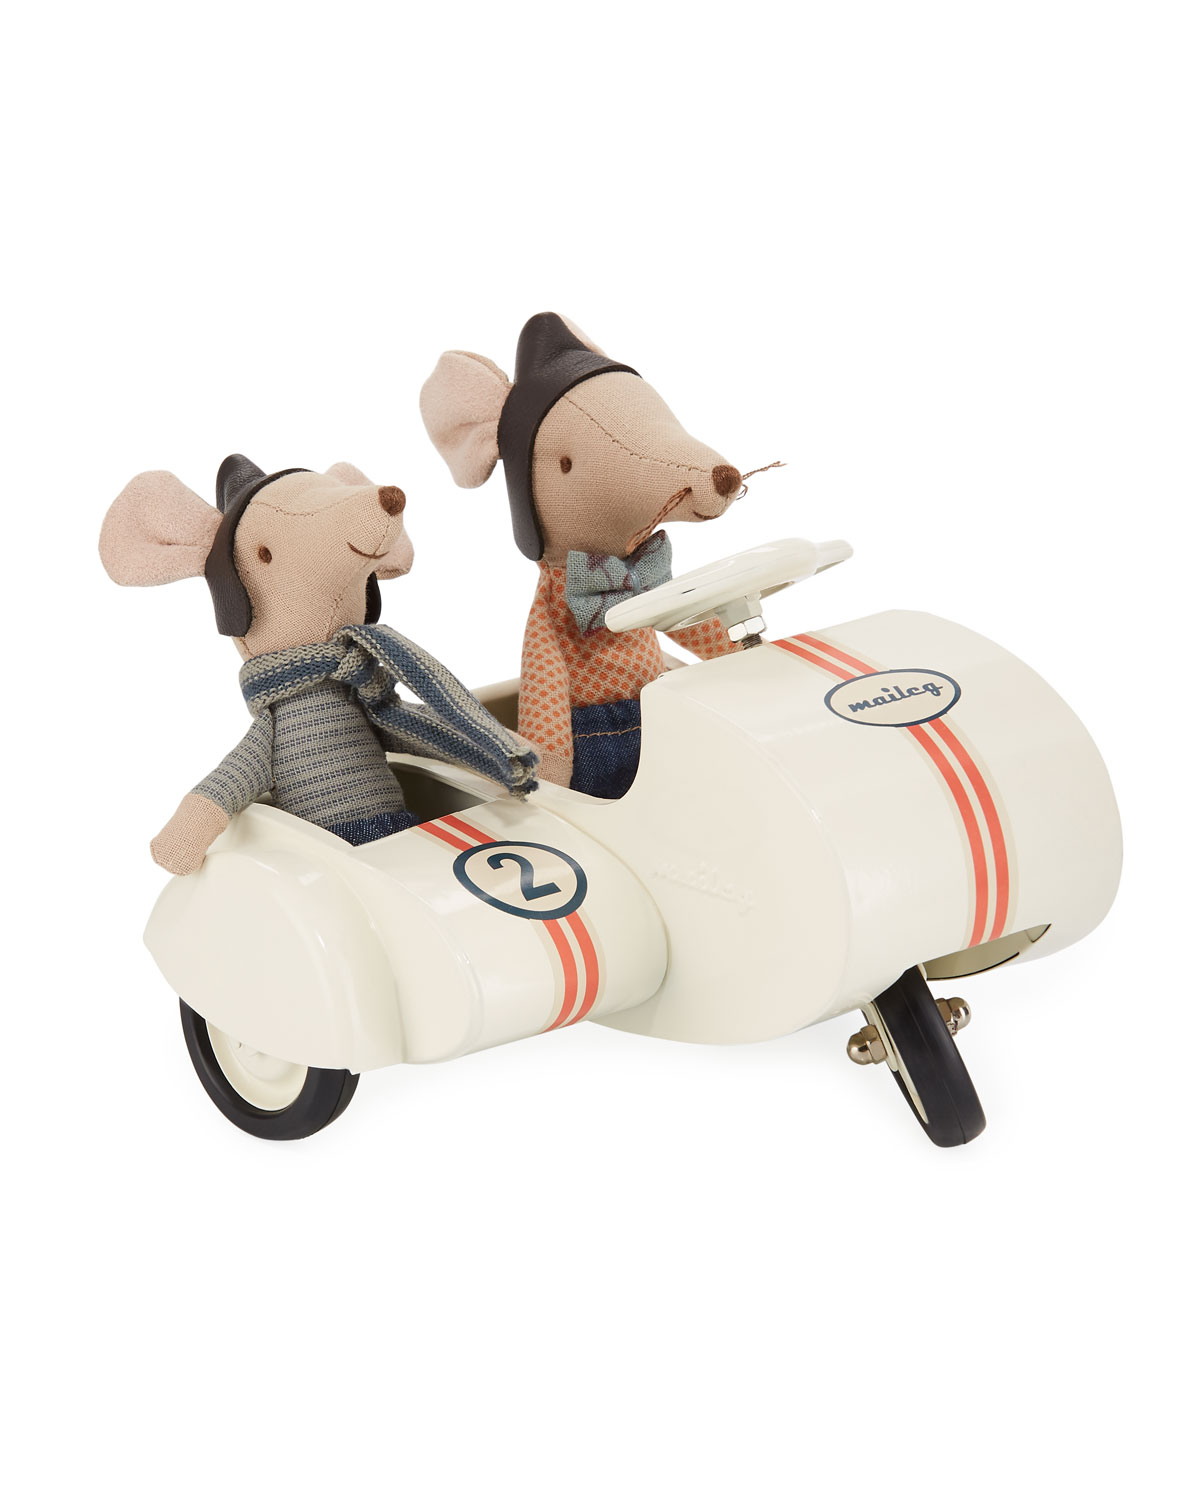 Maileg Mice & Scooter Bundle Toy | Neiman Marcus